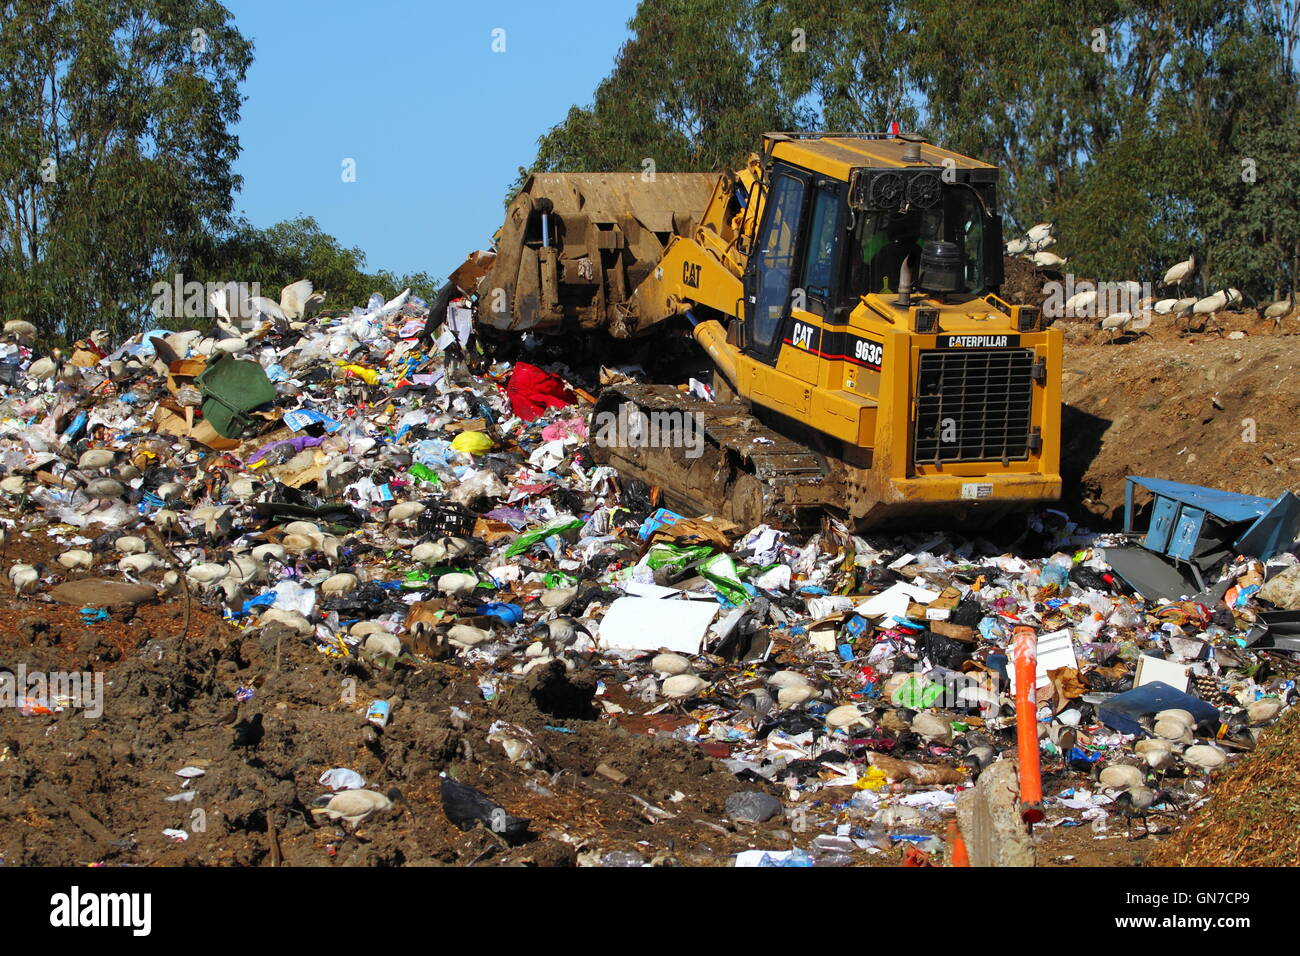 A Caterpillar 963C bulldozer pushes trash rubbish at a tip - or waste management facility - in NSW, Australia. - Stock Image